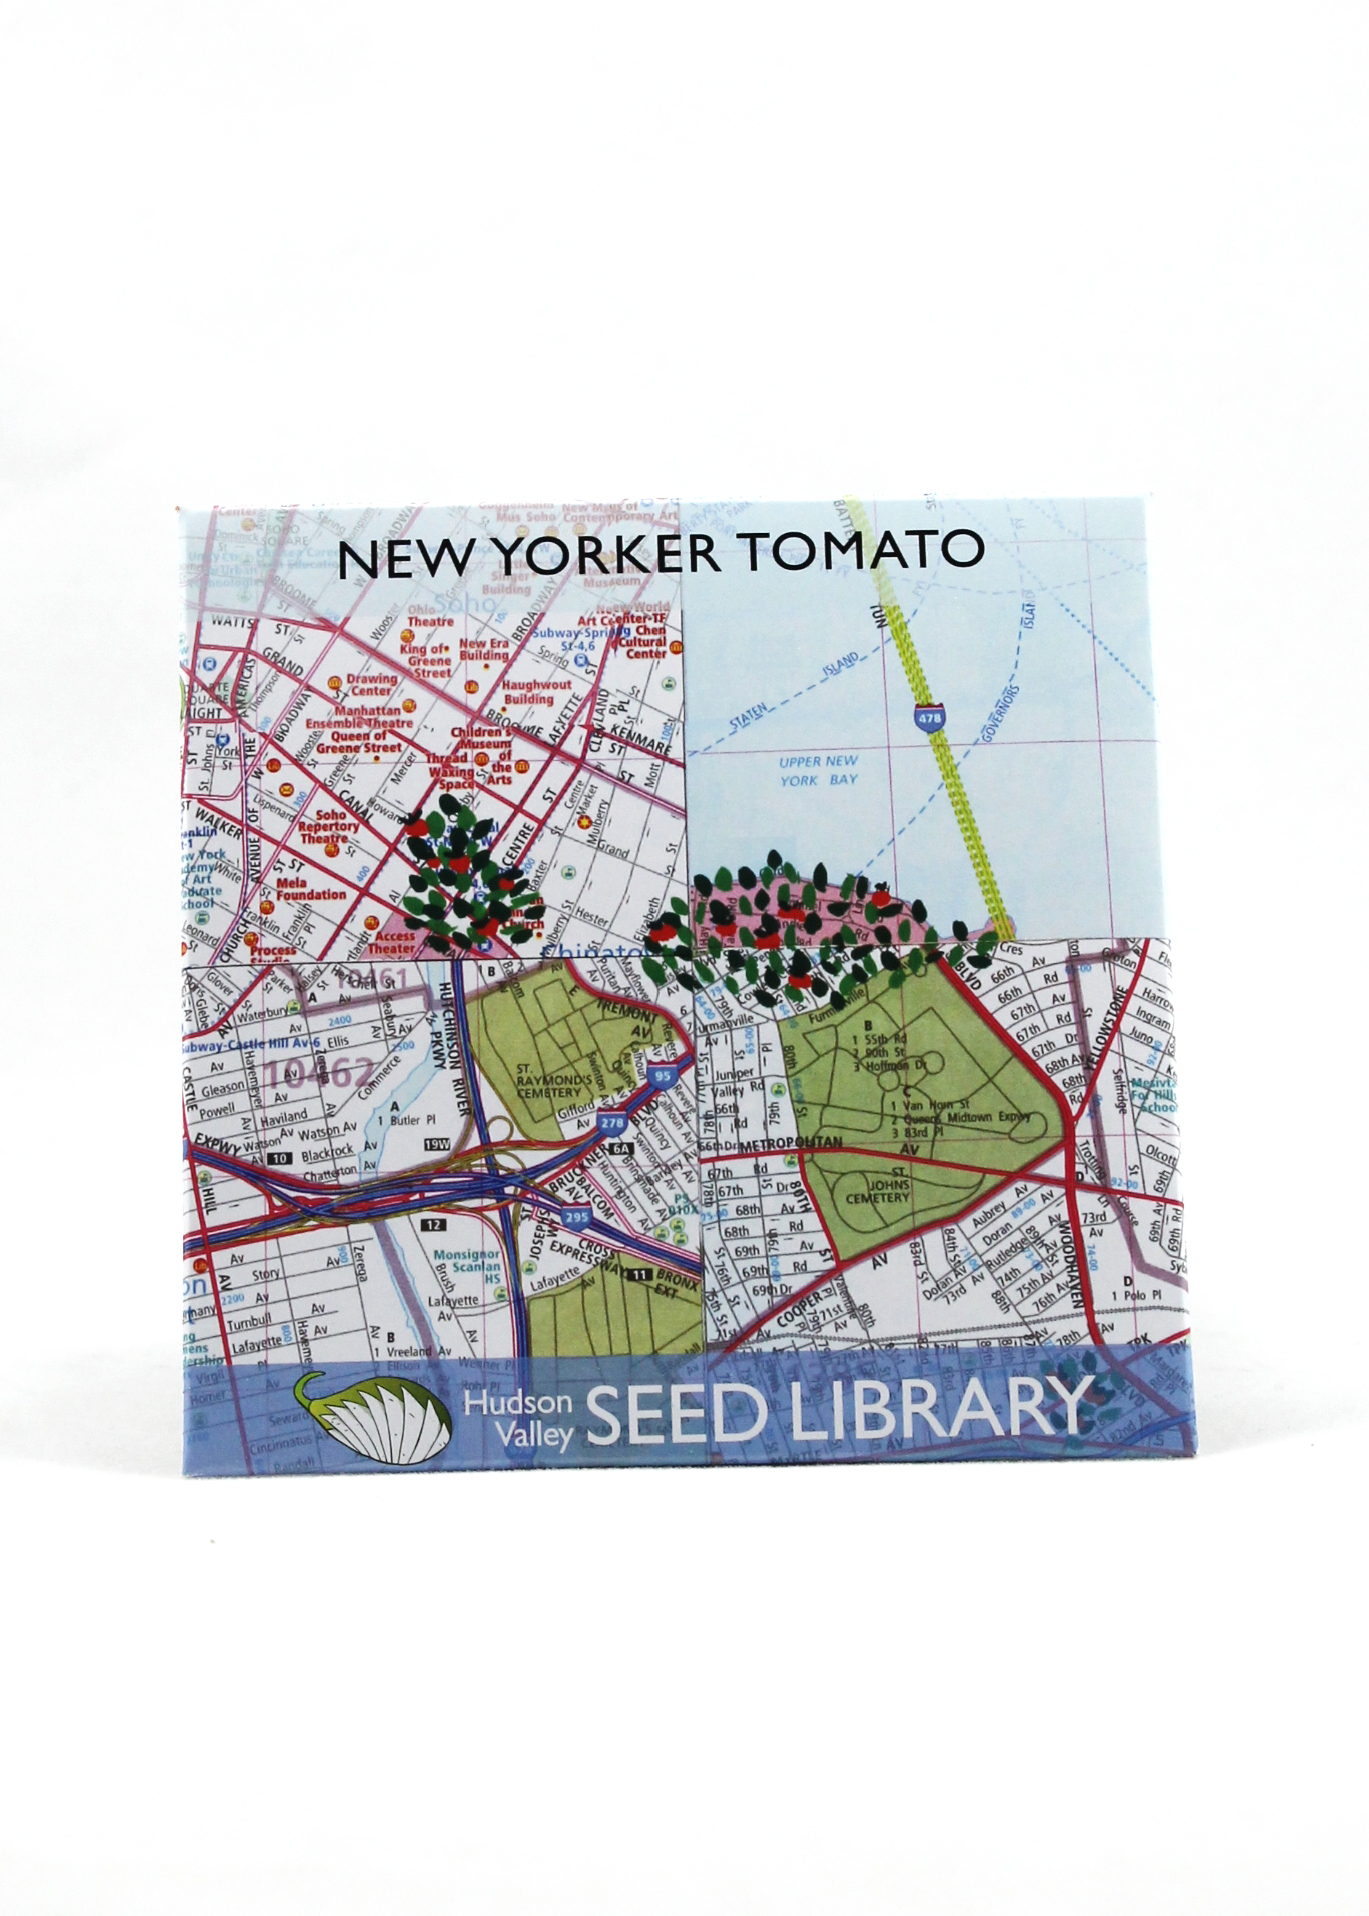 new yorker tomato seeds